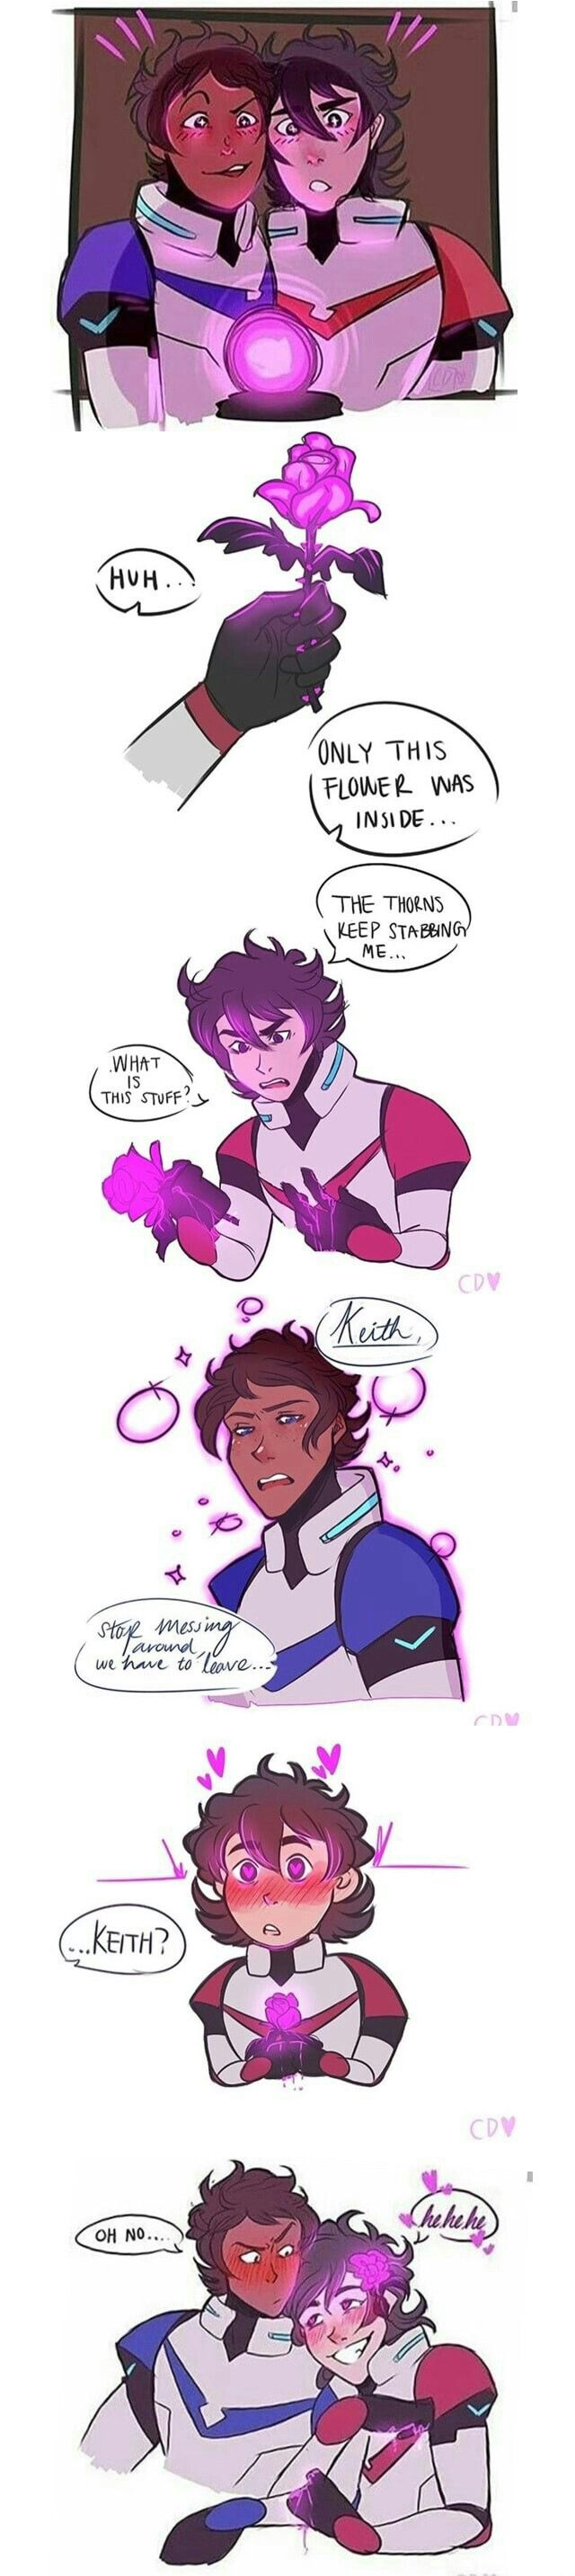 Klance- Love flower part 1 (art is by CaseyDambro, btw I made up the title)